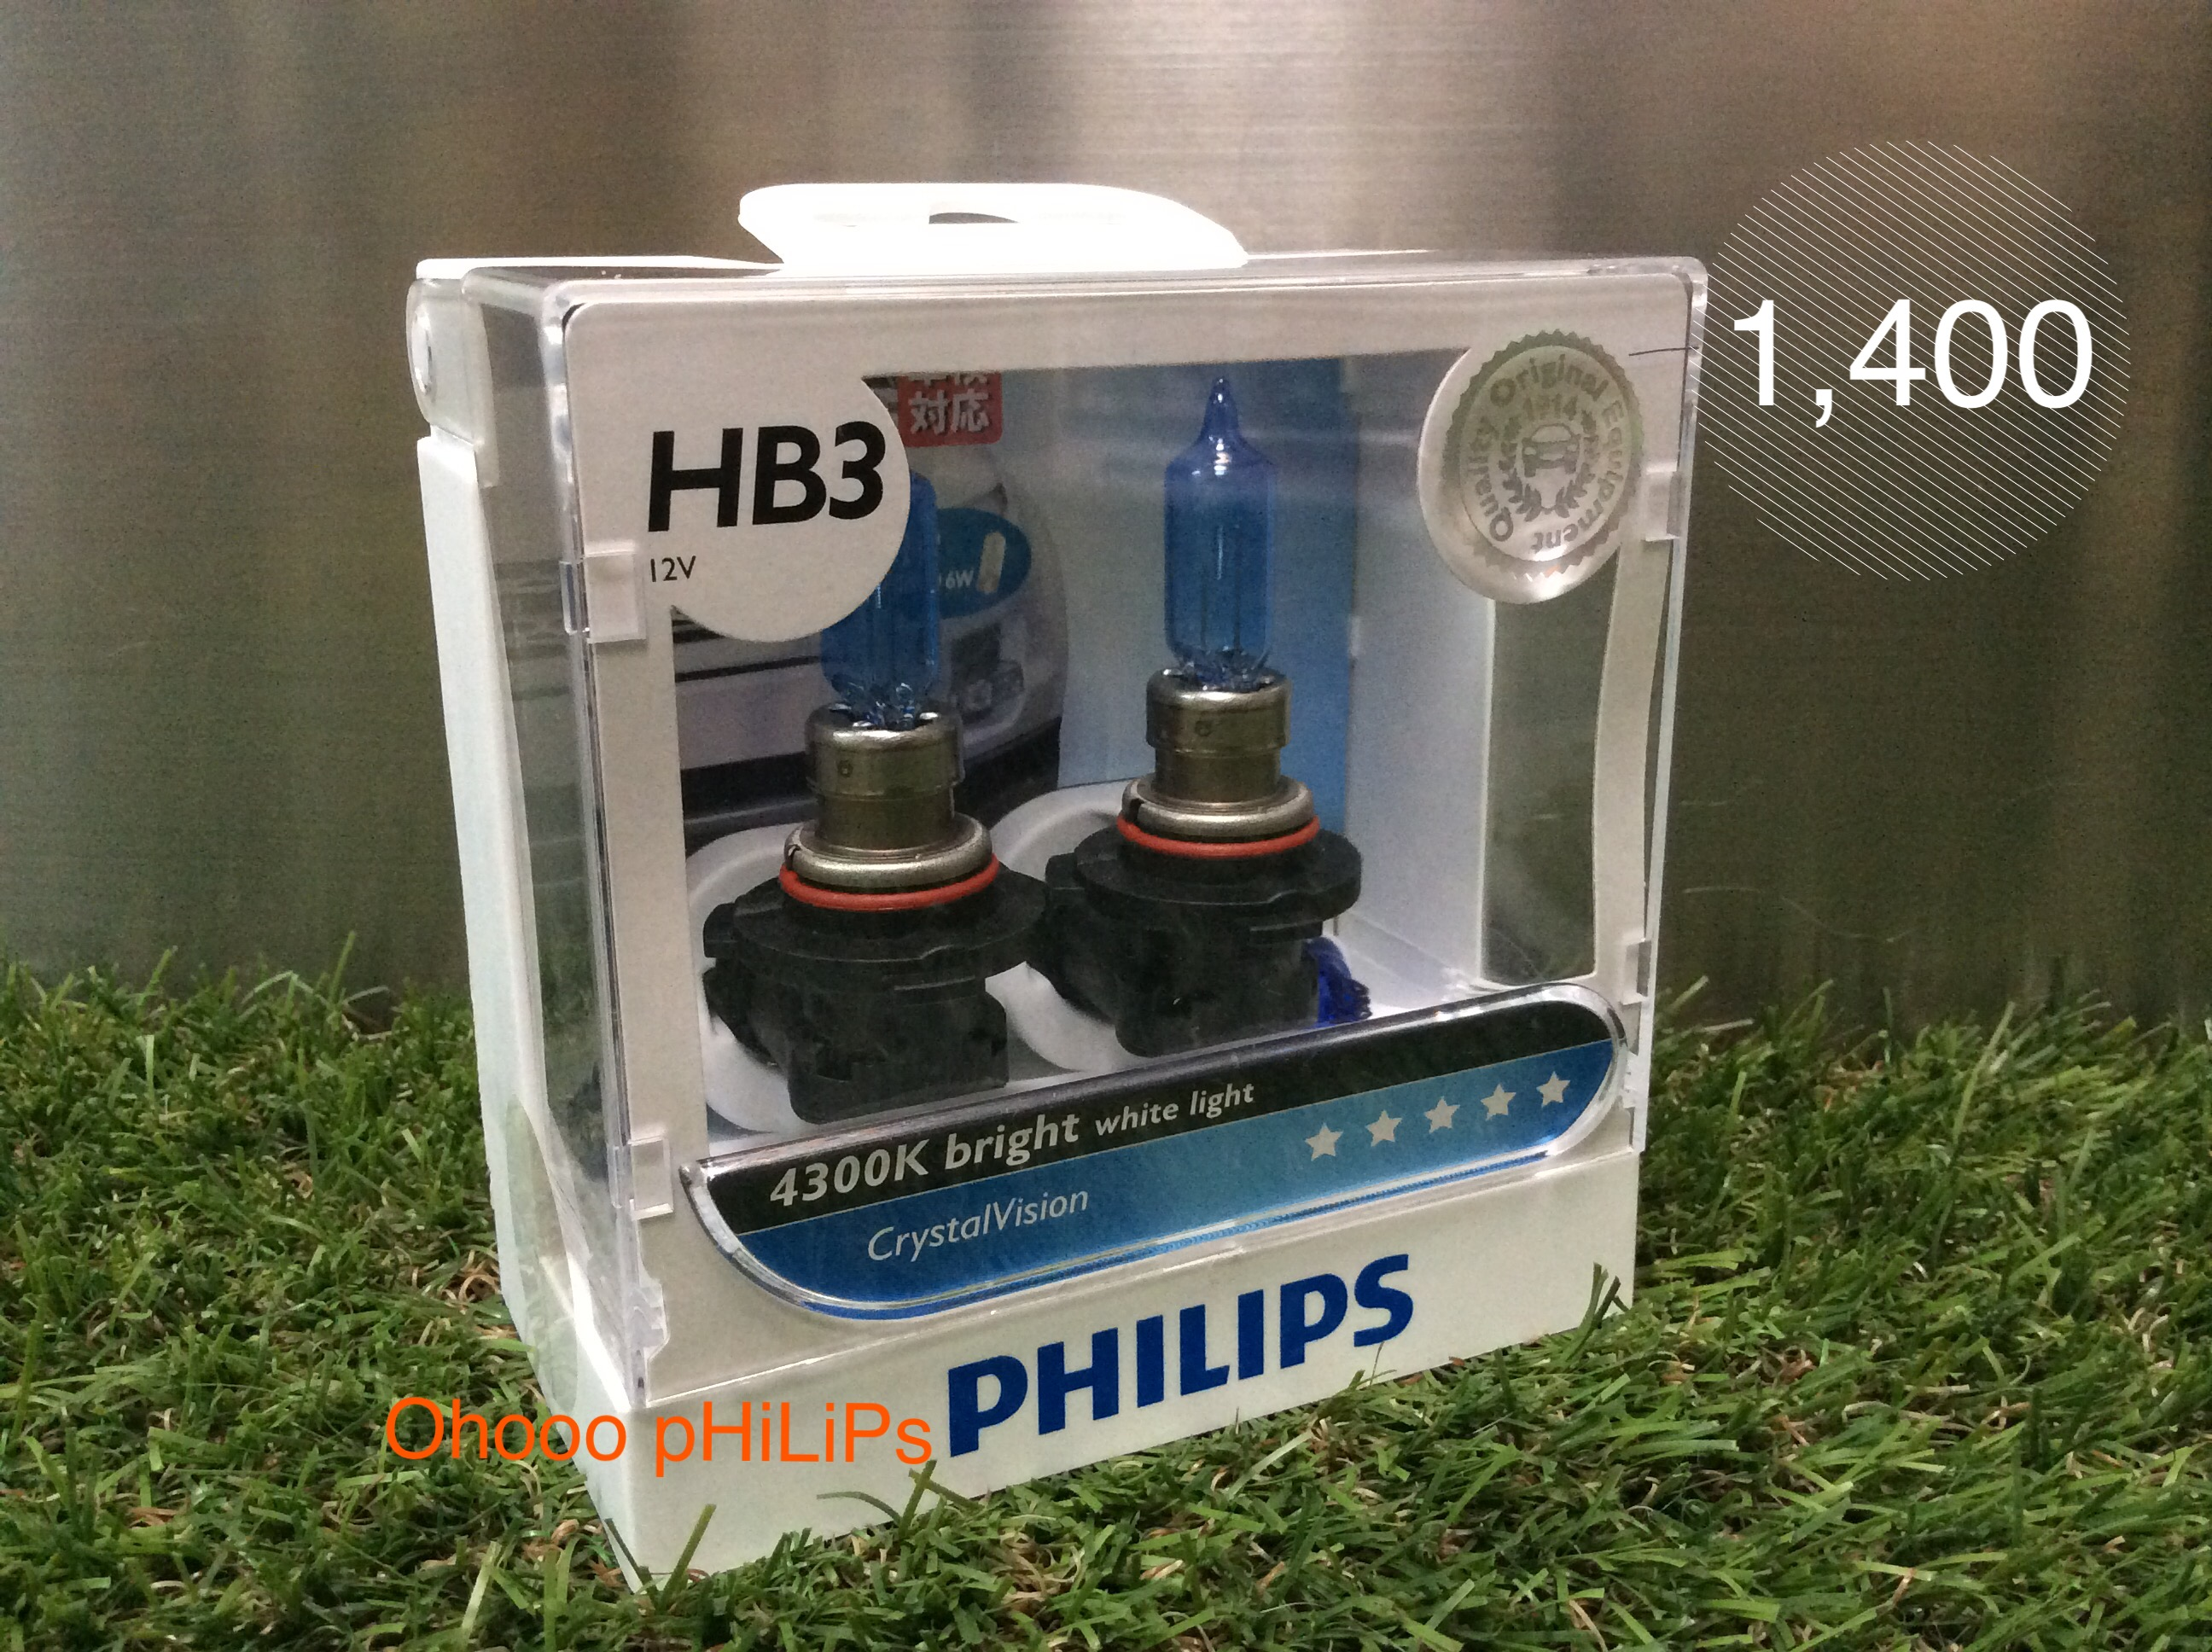 Philips Crystal Vision 4300K HB3